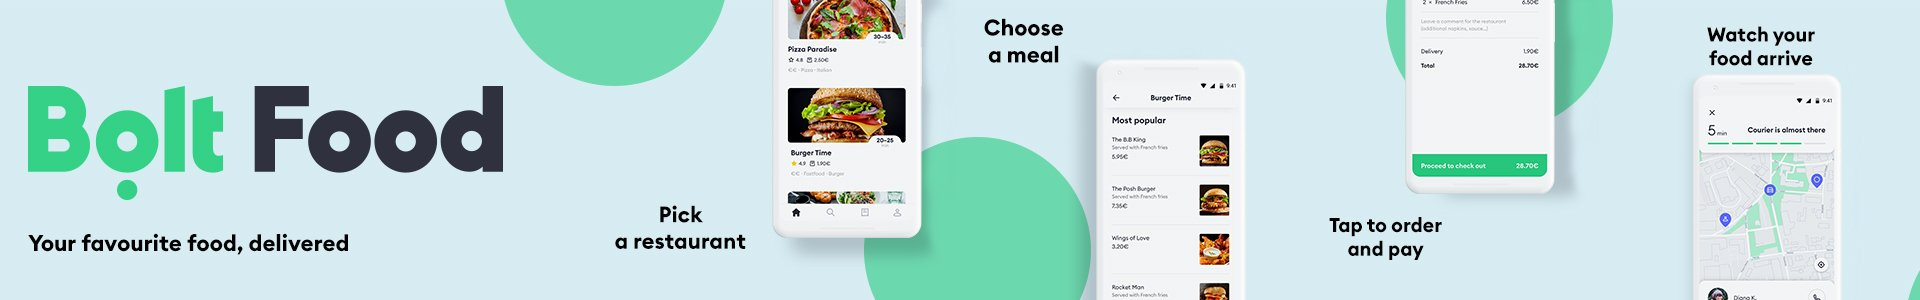 Bolt Food Banner Ad